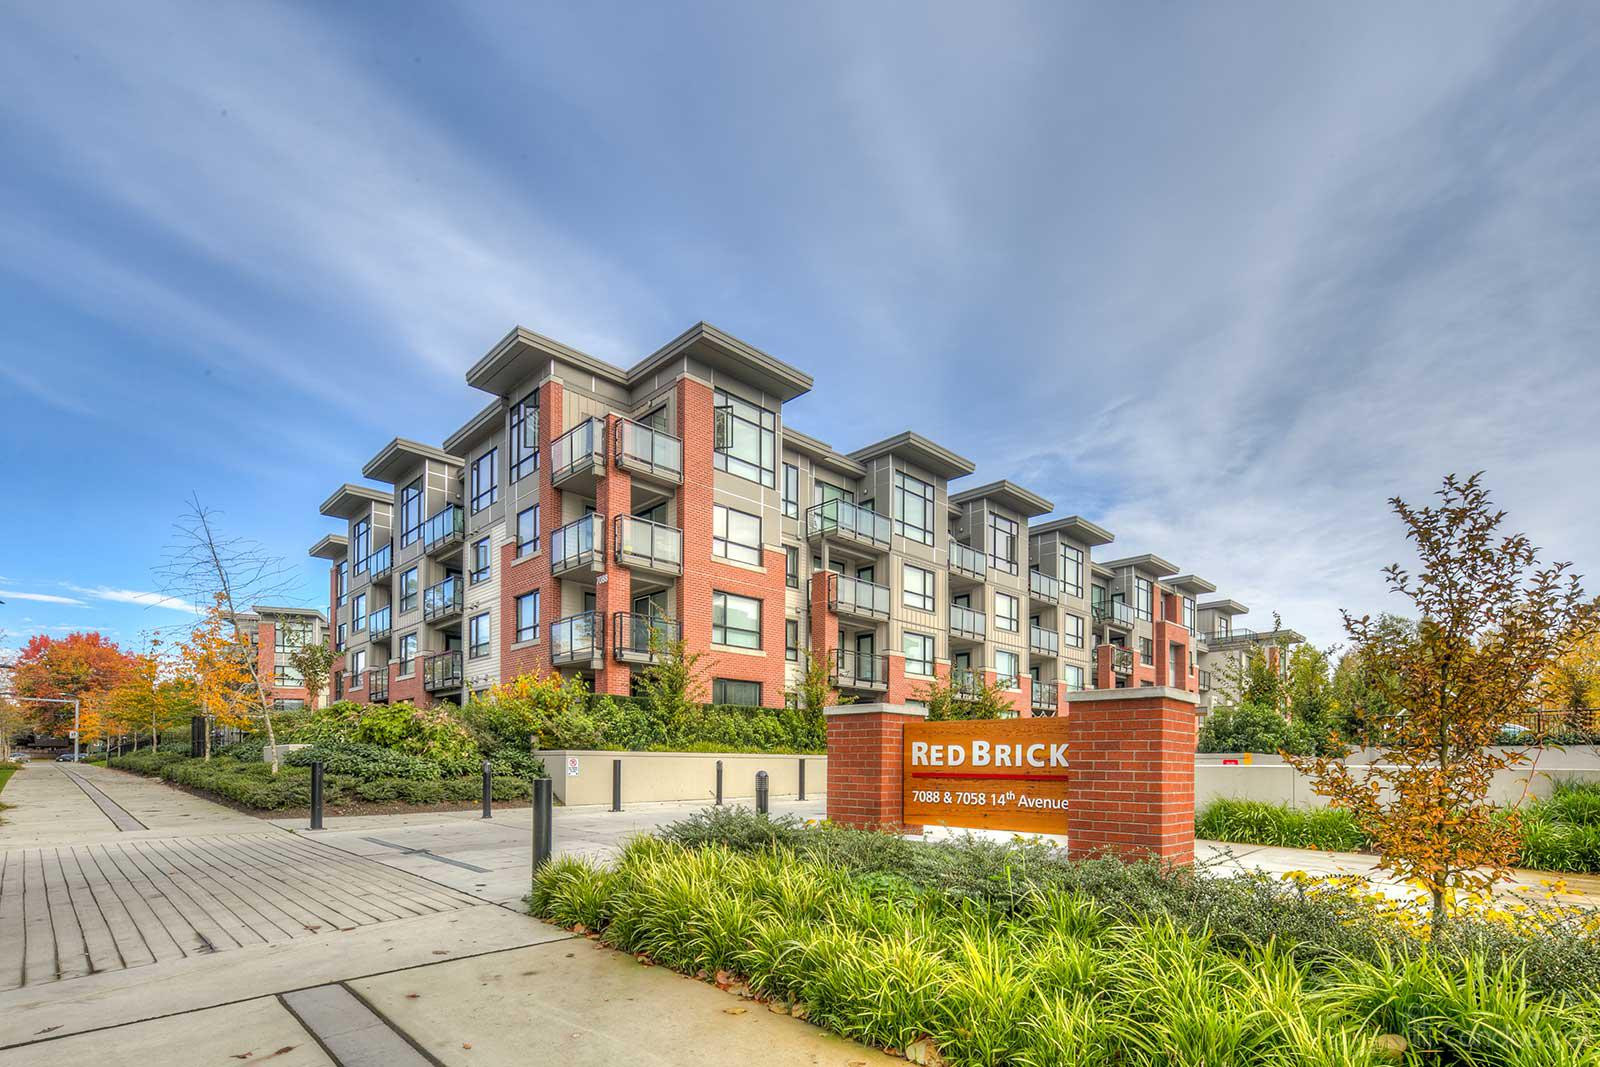 Redbrick at 7008 14th Ave, Burnaby 0